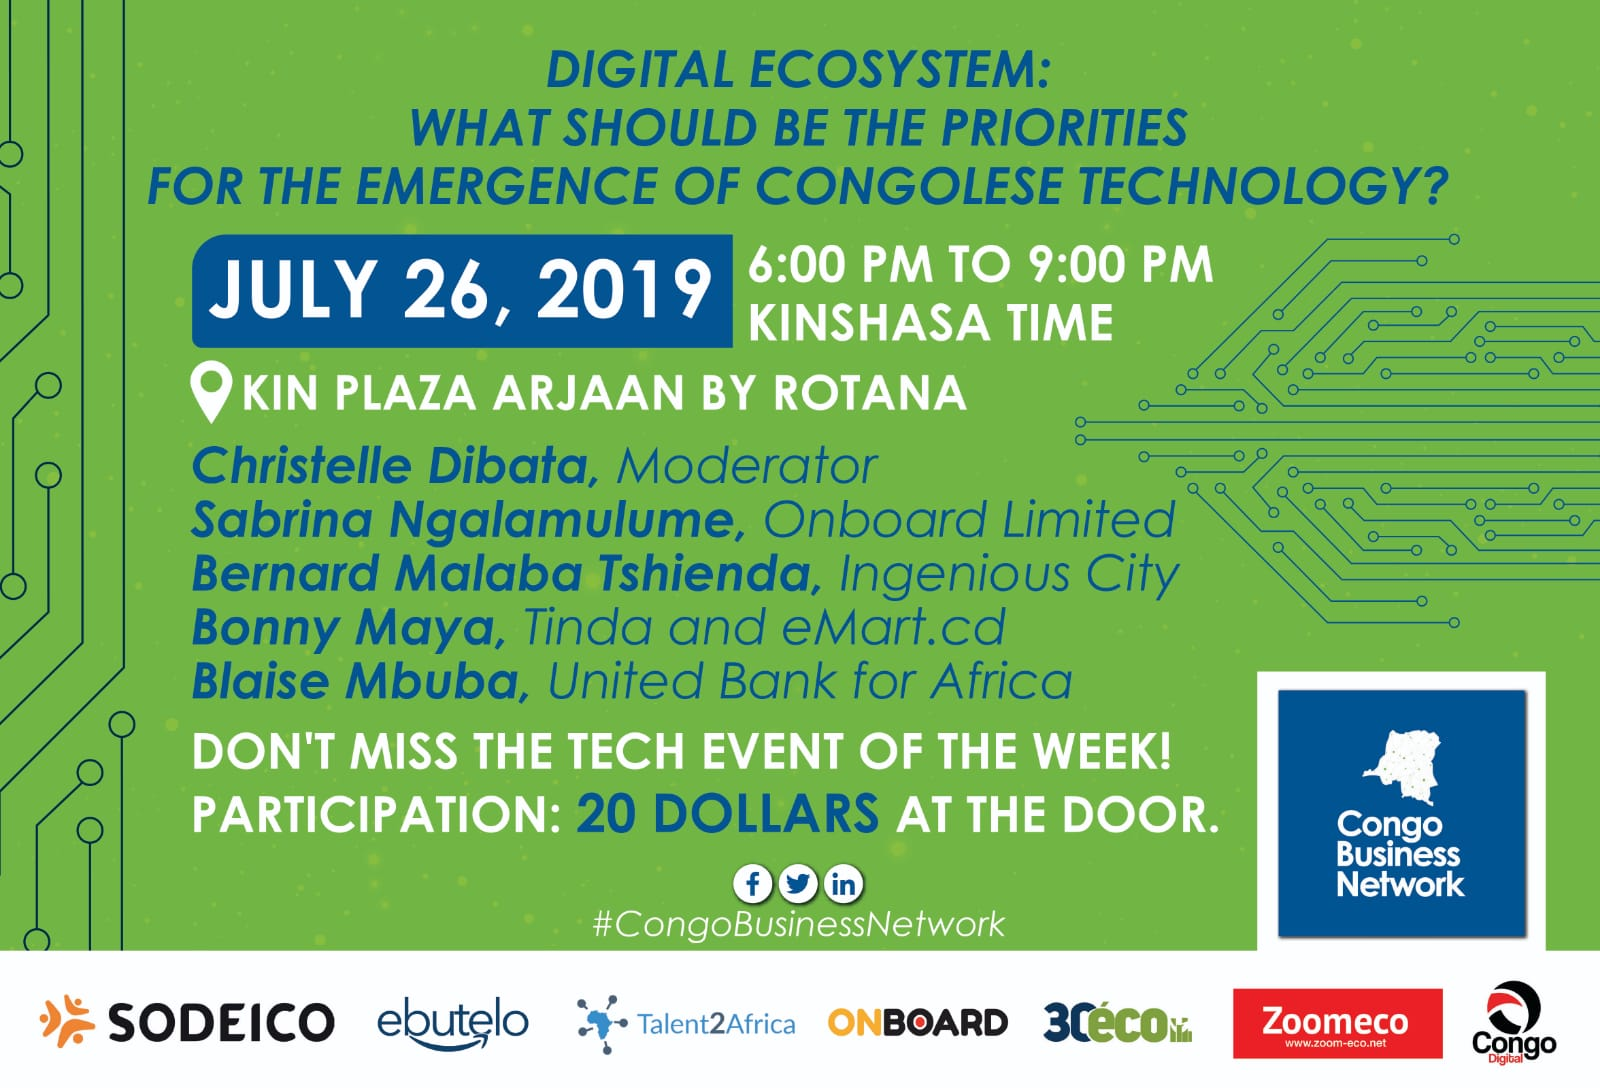 """Kinshasa: """"digital ecosystem"""" will be at the heart of Congo Business Network's event on July 26, 2019"""